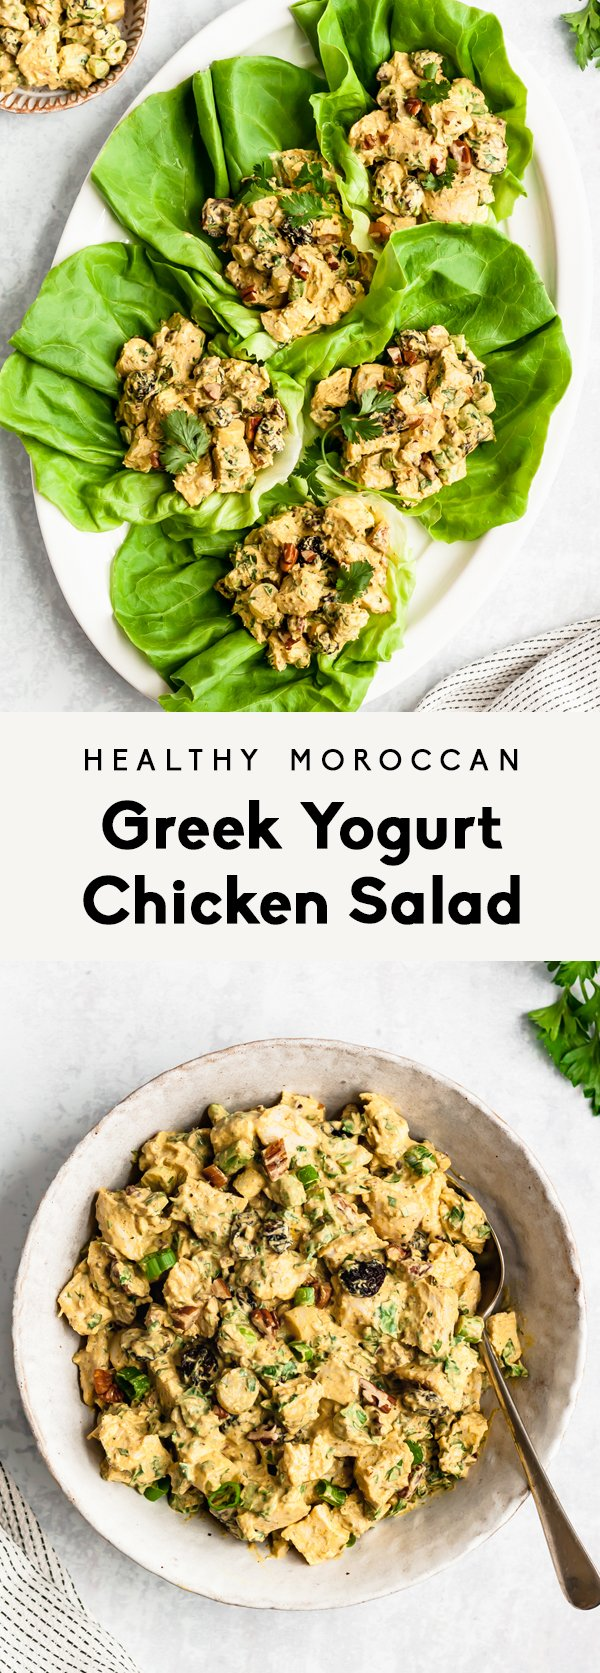 collage of healthy greek yogurt chicken salad in a bowl and in lettuce wraps